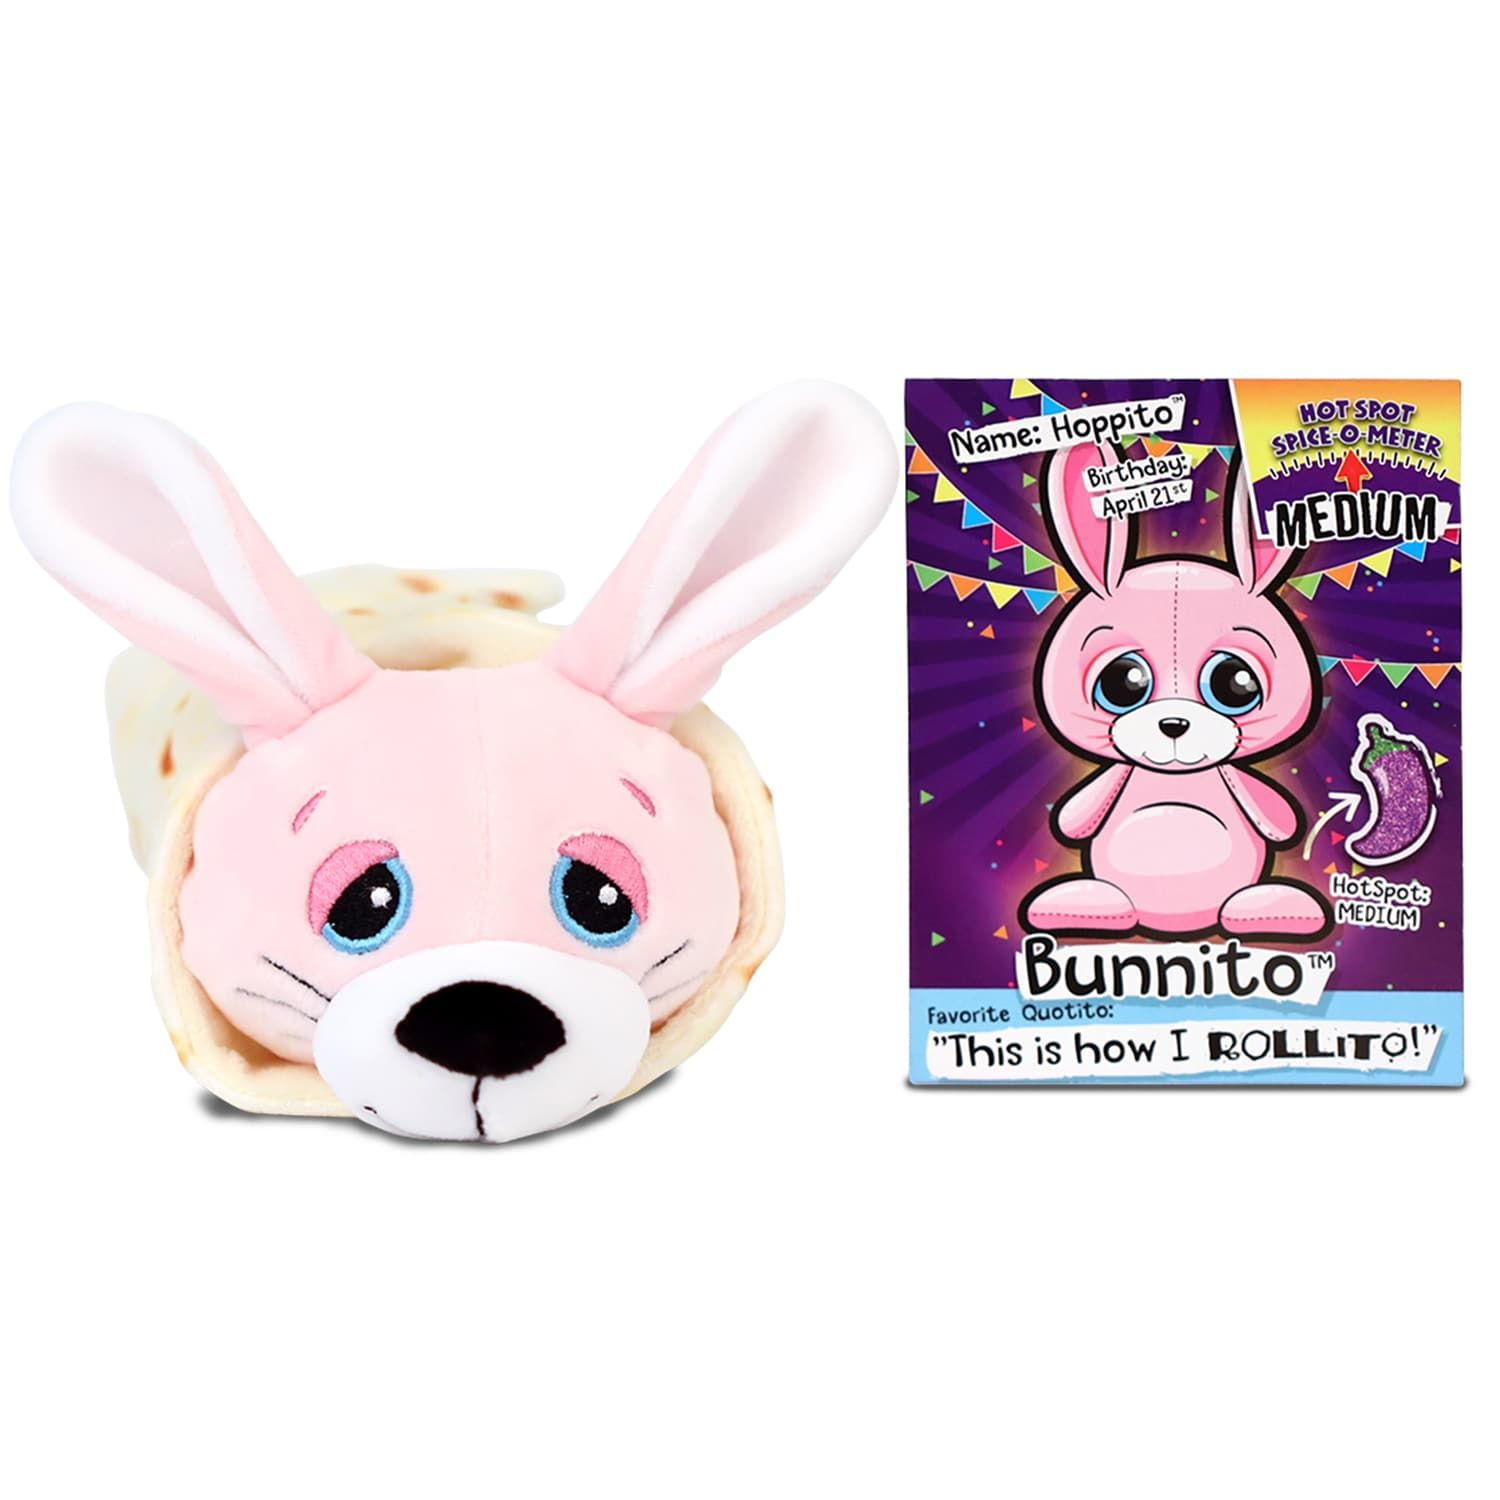 Cutetitos Collectible Plush Stuffed Animals Affiliate